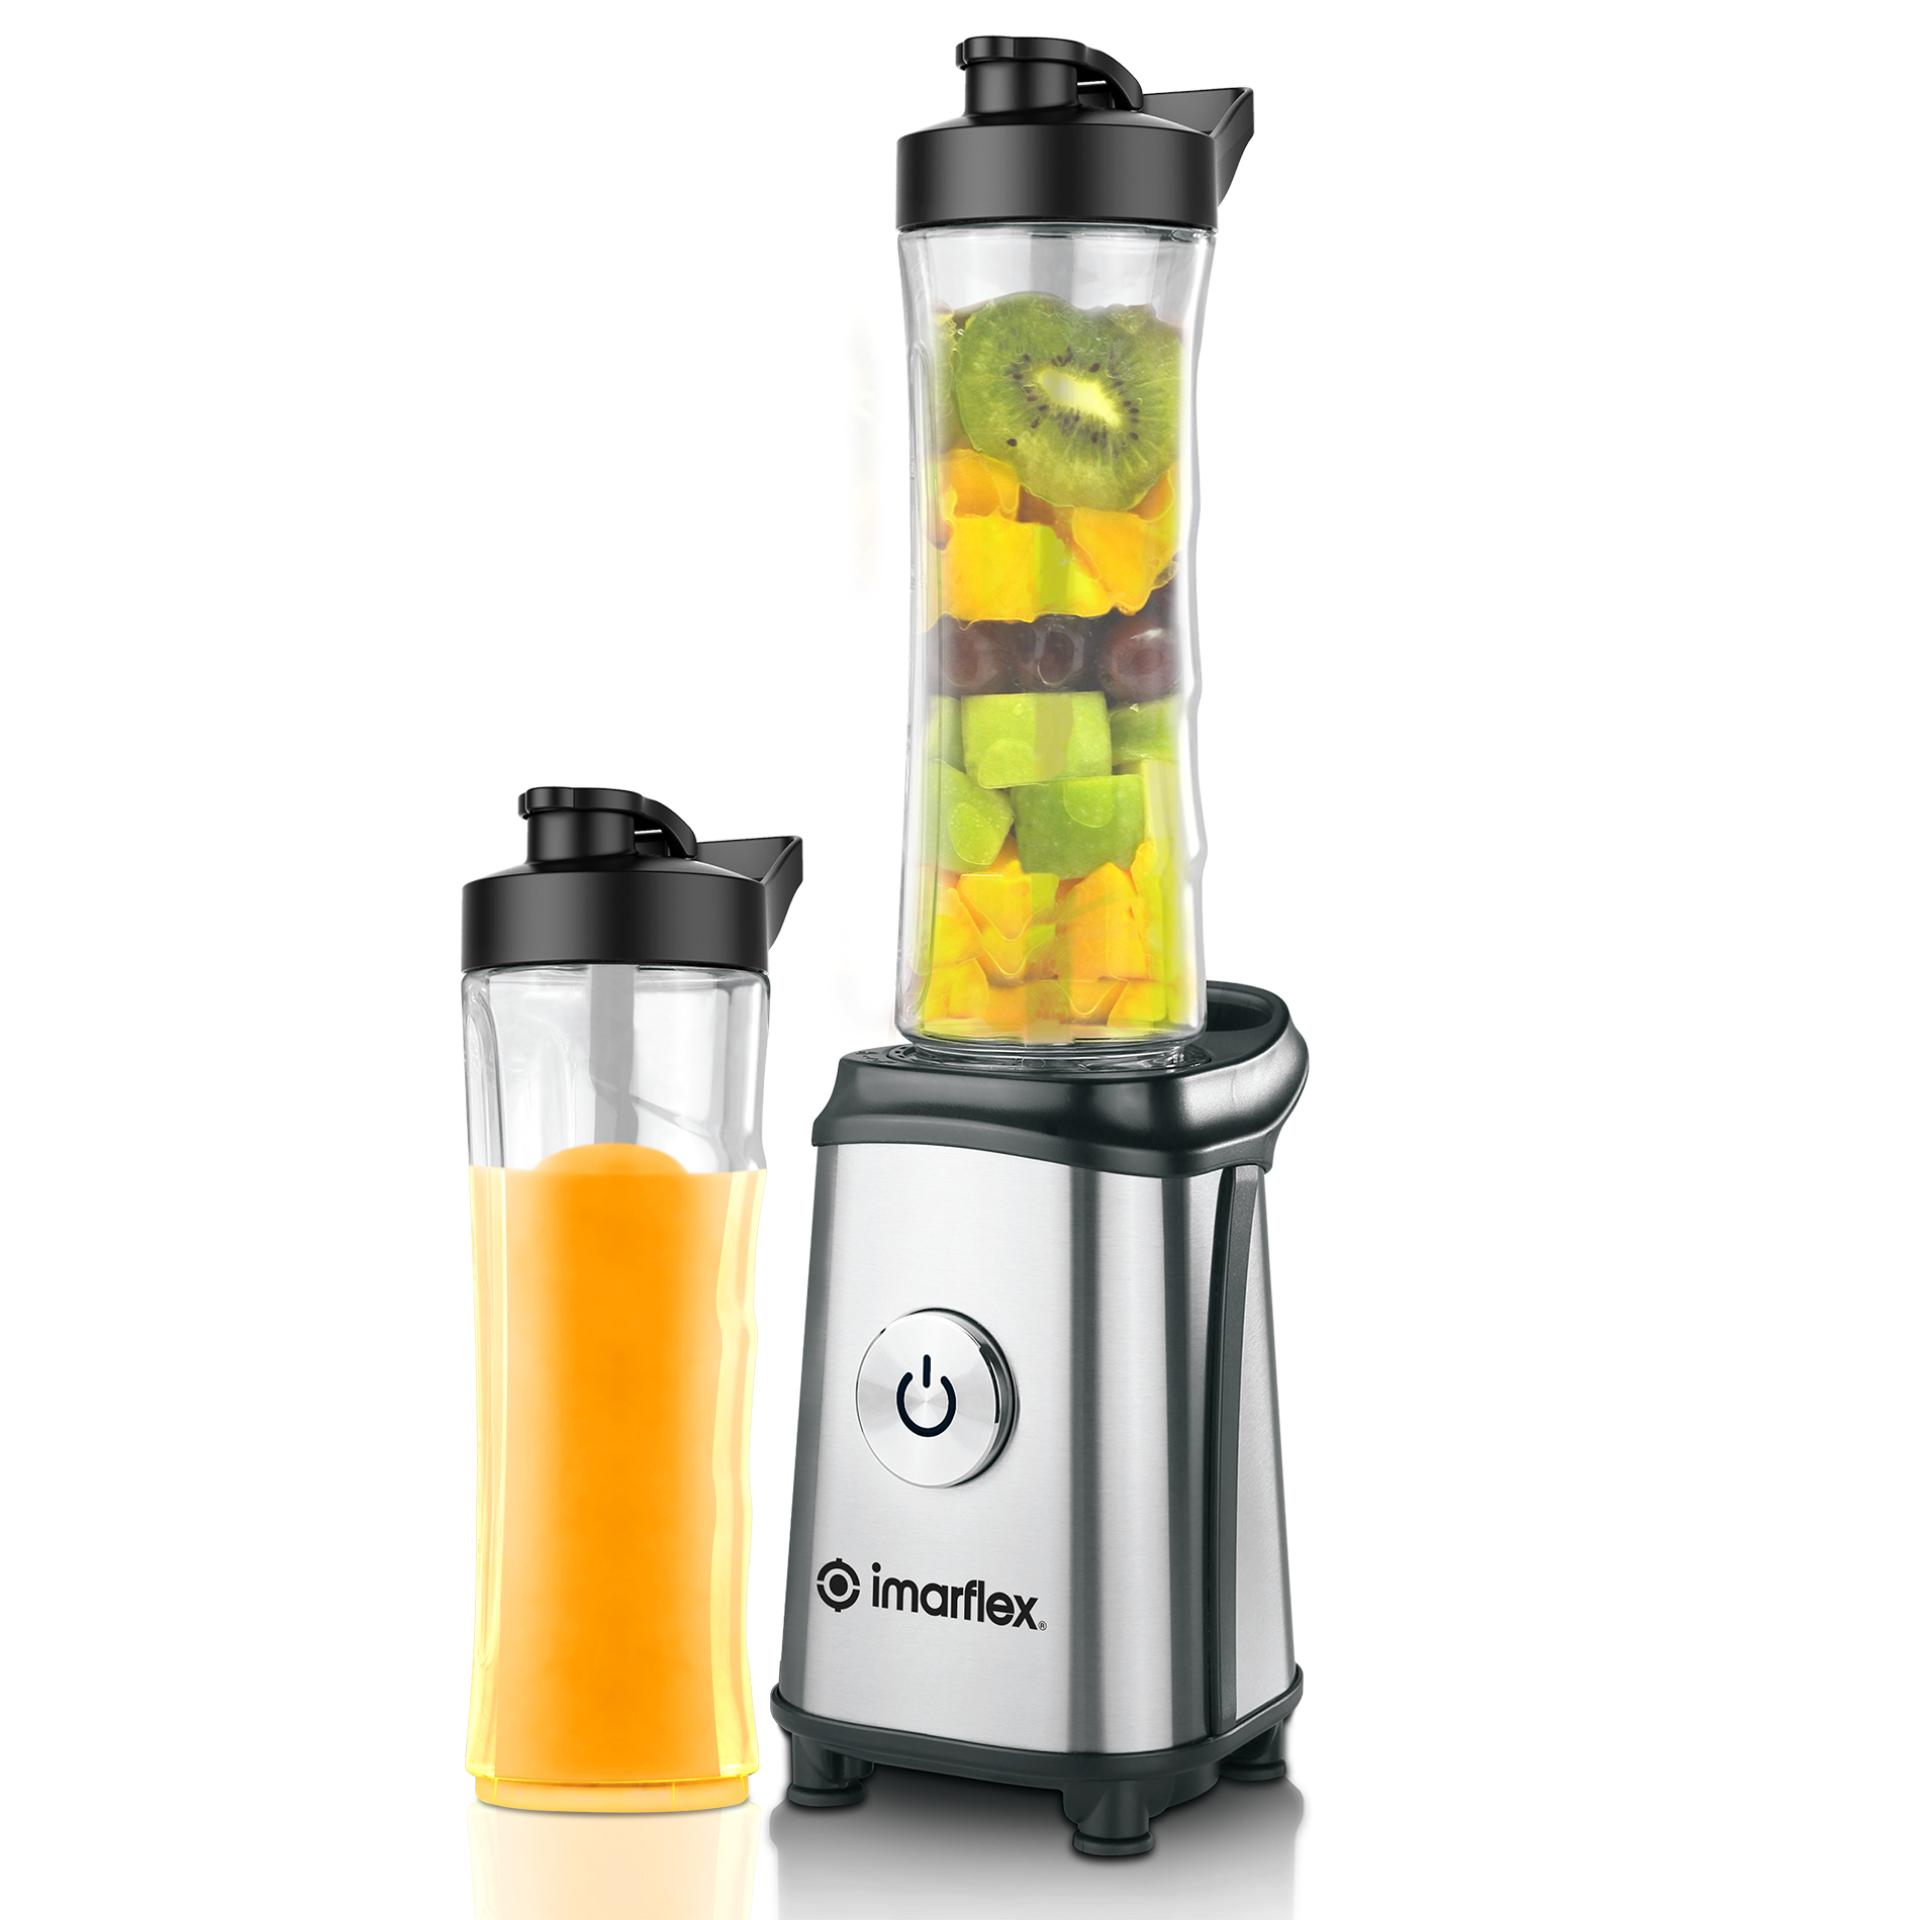 Imarflex Ib 250p 3 In 1 Blend To Go